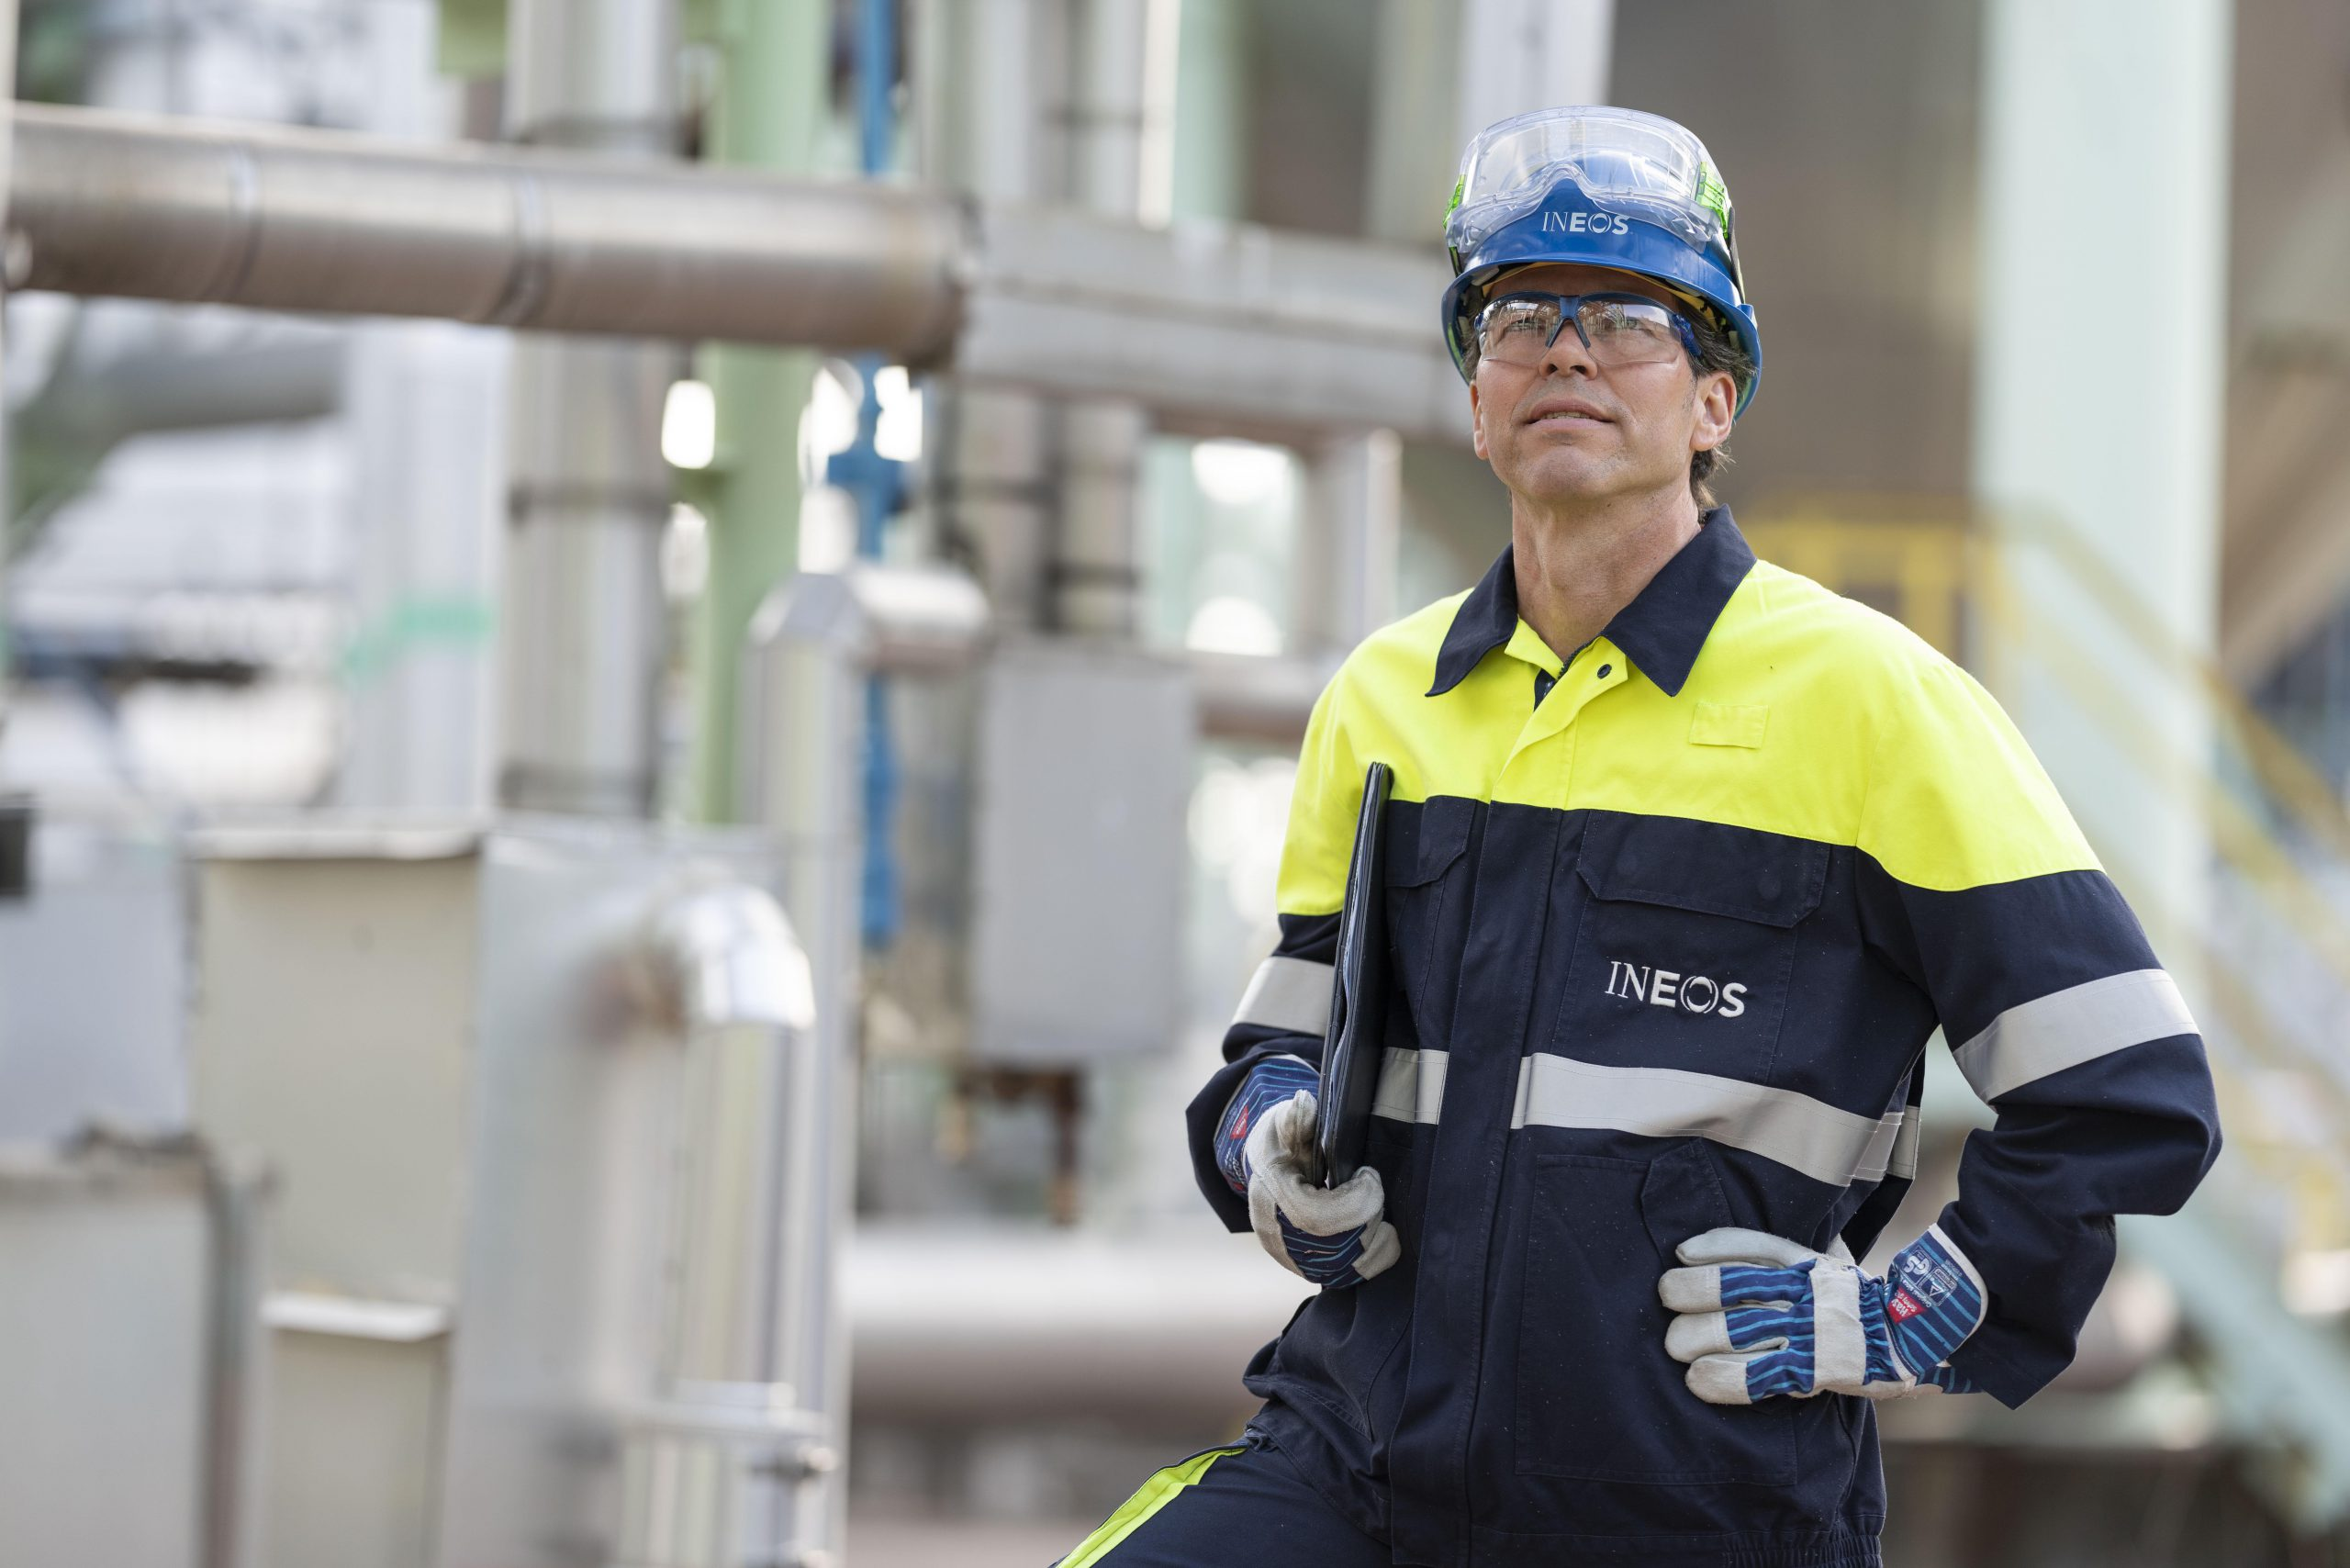 https://project-one.ineos.com/wp-content/uploads/2020/04/Ineos27042020-23-min-scaled.jpg